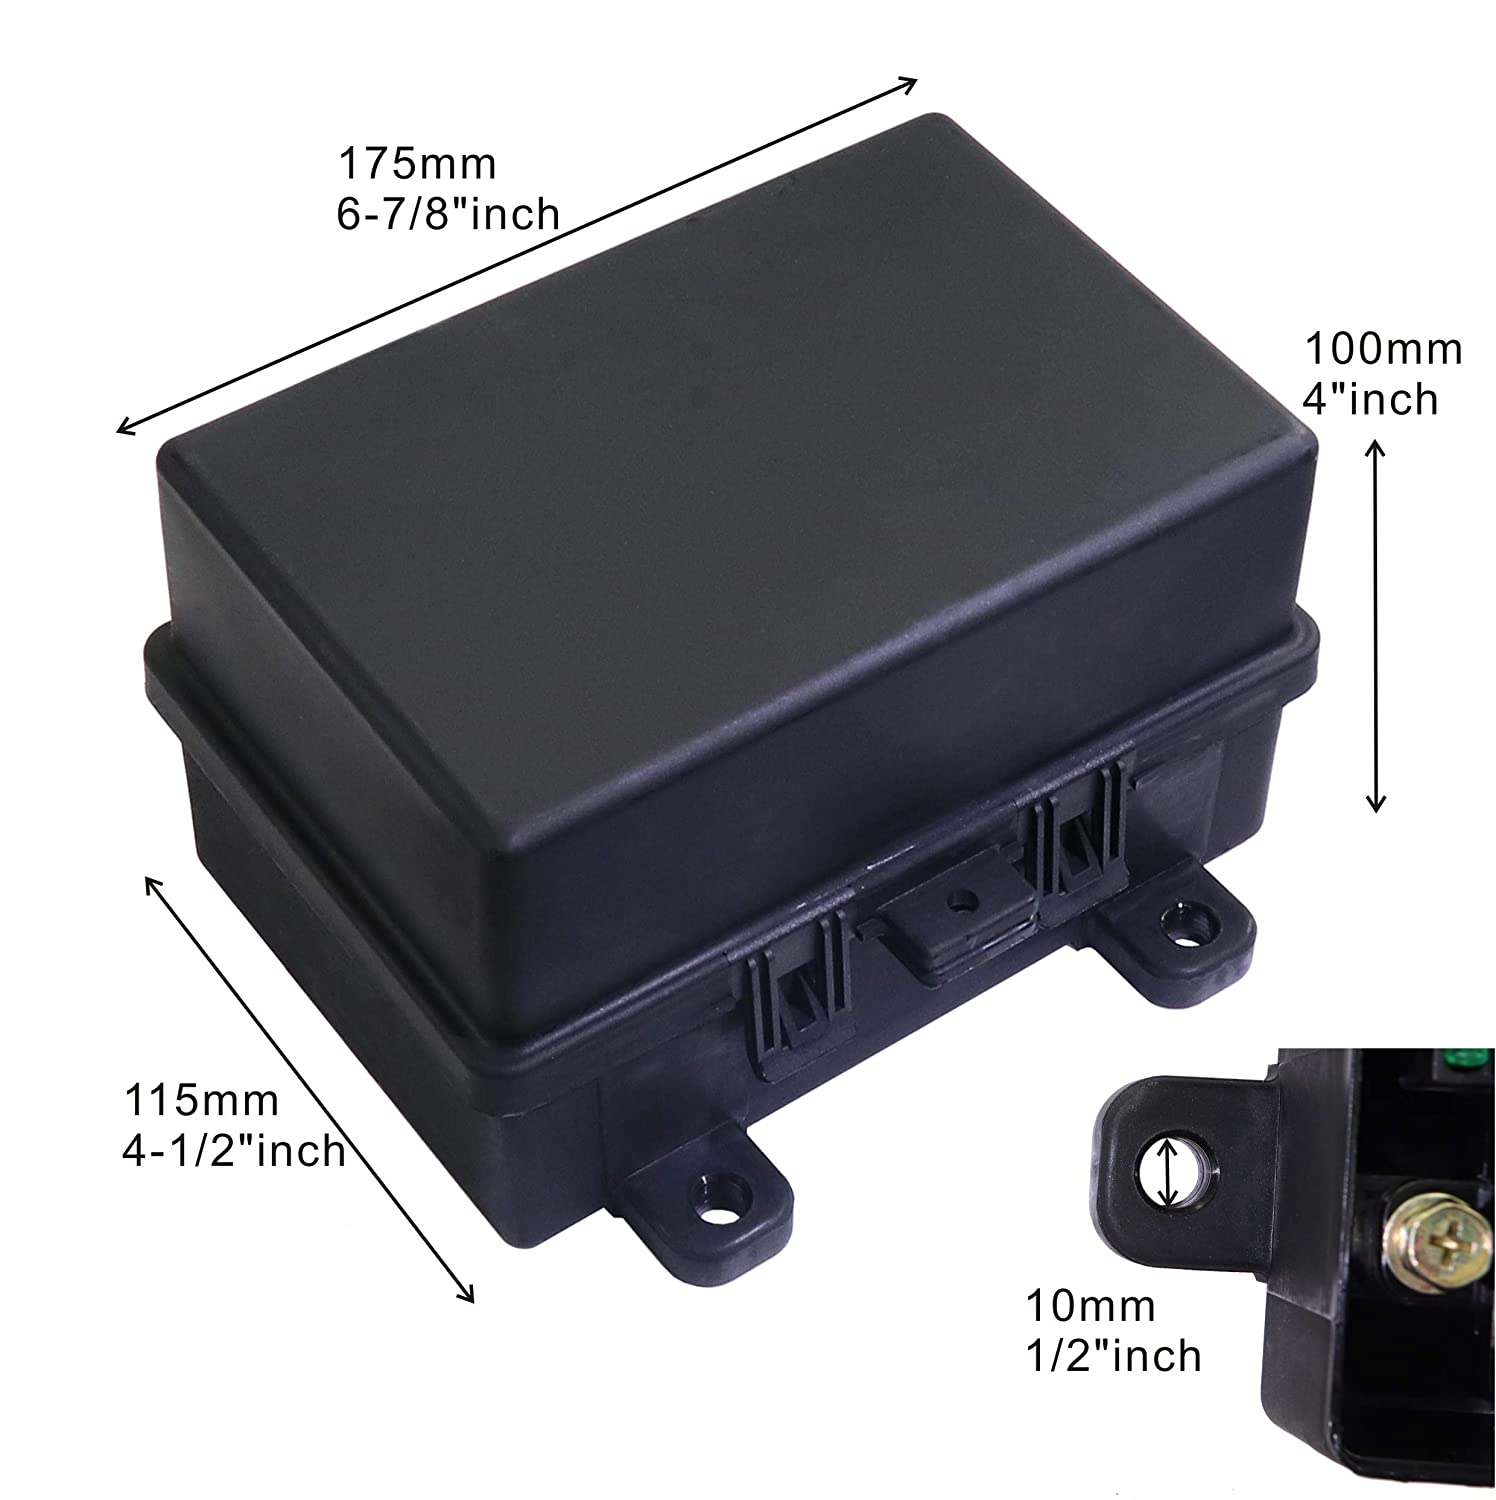 12-Slot Fuse Relay Box,6 Relays Box 6 ATC//ATO Fuses Holder Block with 41pcs Metallic Pins for Automotive and Jeep Boat Car Marine Engine Bay